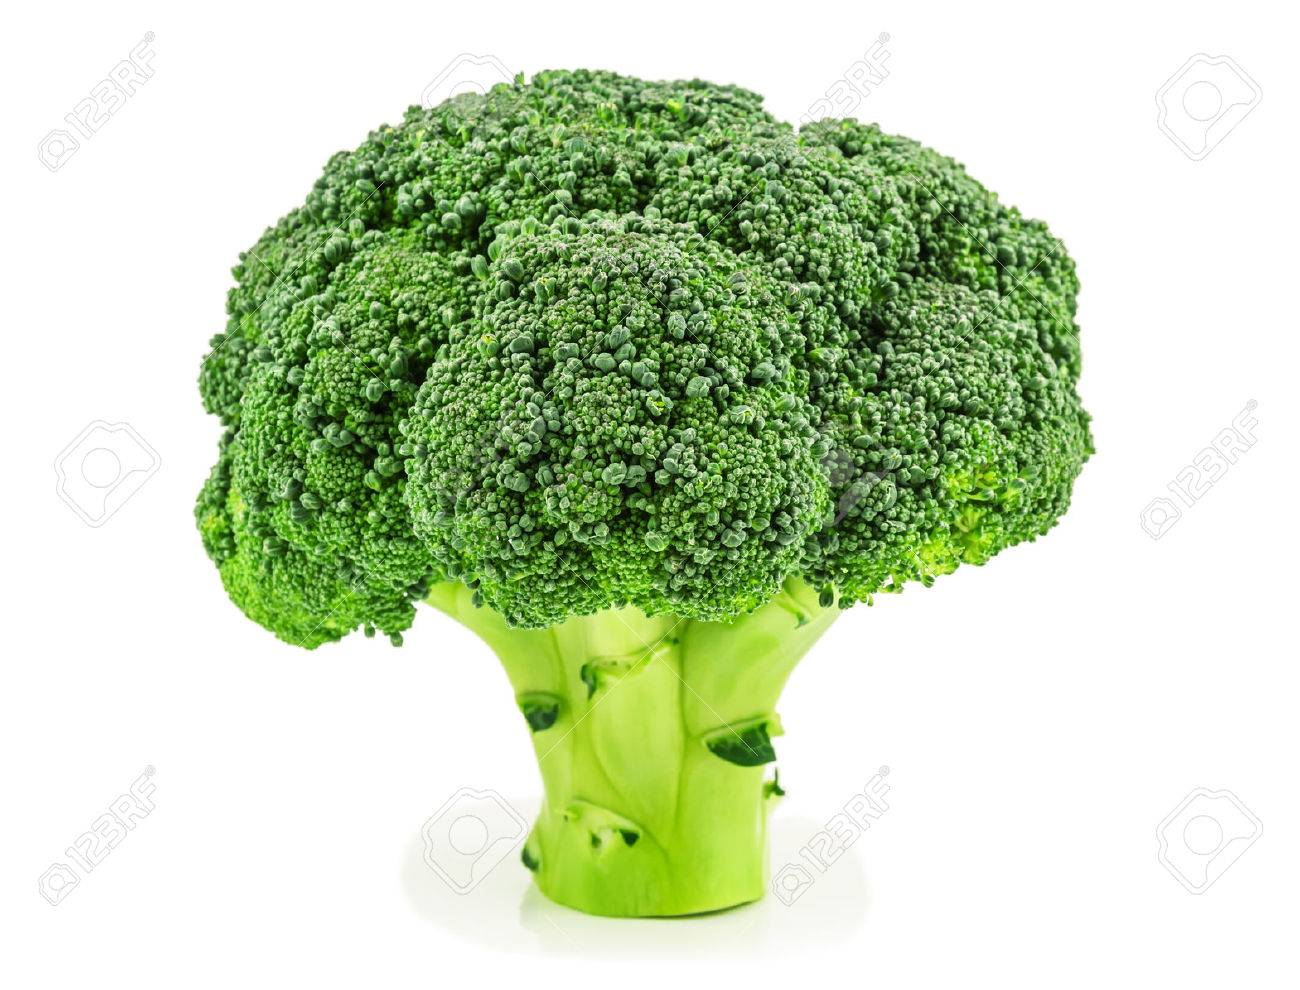 raw and ripe broccoli on white background - 51038412